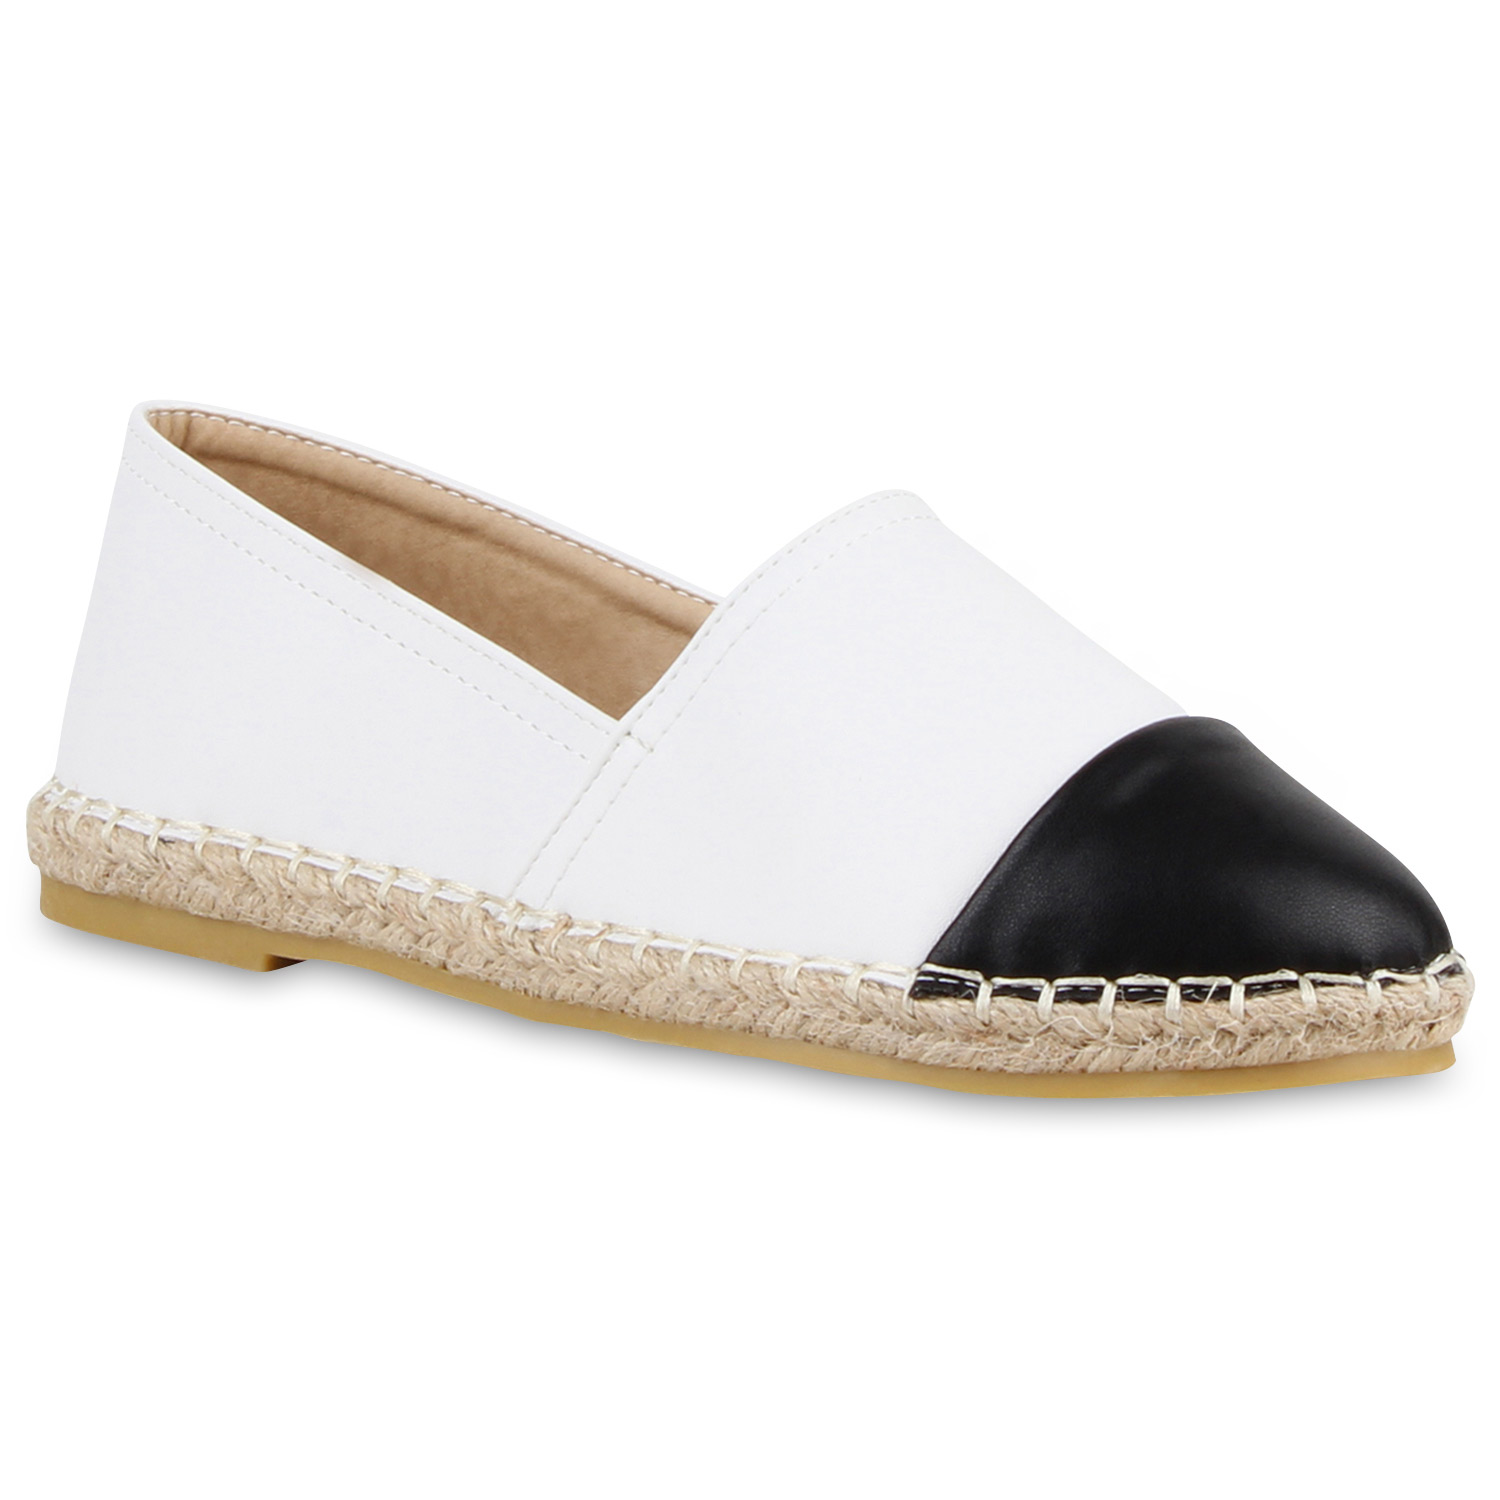 modische damen bast slipper bequeme espadrilles sommer schuhe 811185 trendy ebay. Black Bedroom Furniture Sets. Home Design Ideas